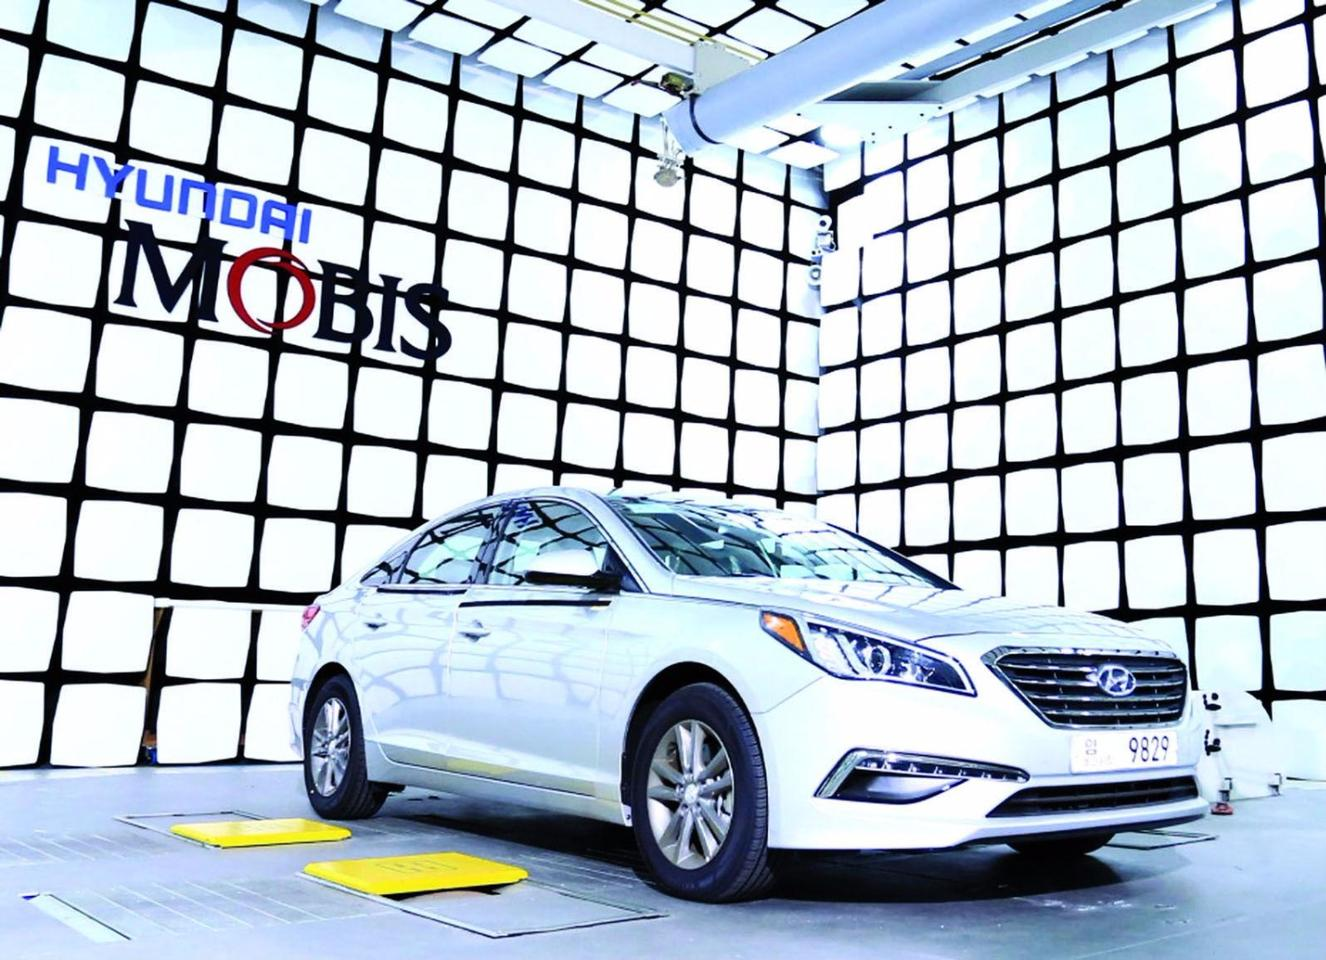 Mobis has announced a Departed Driver Rescue and Exit Maneuver (DDREM) system which detects a critical situation and then handles it